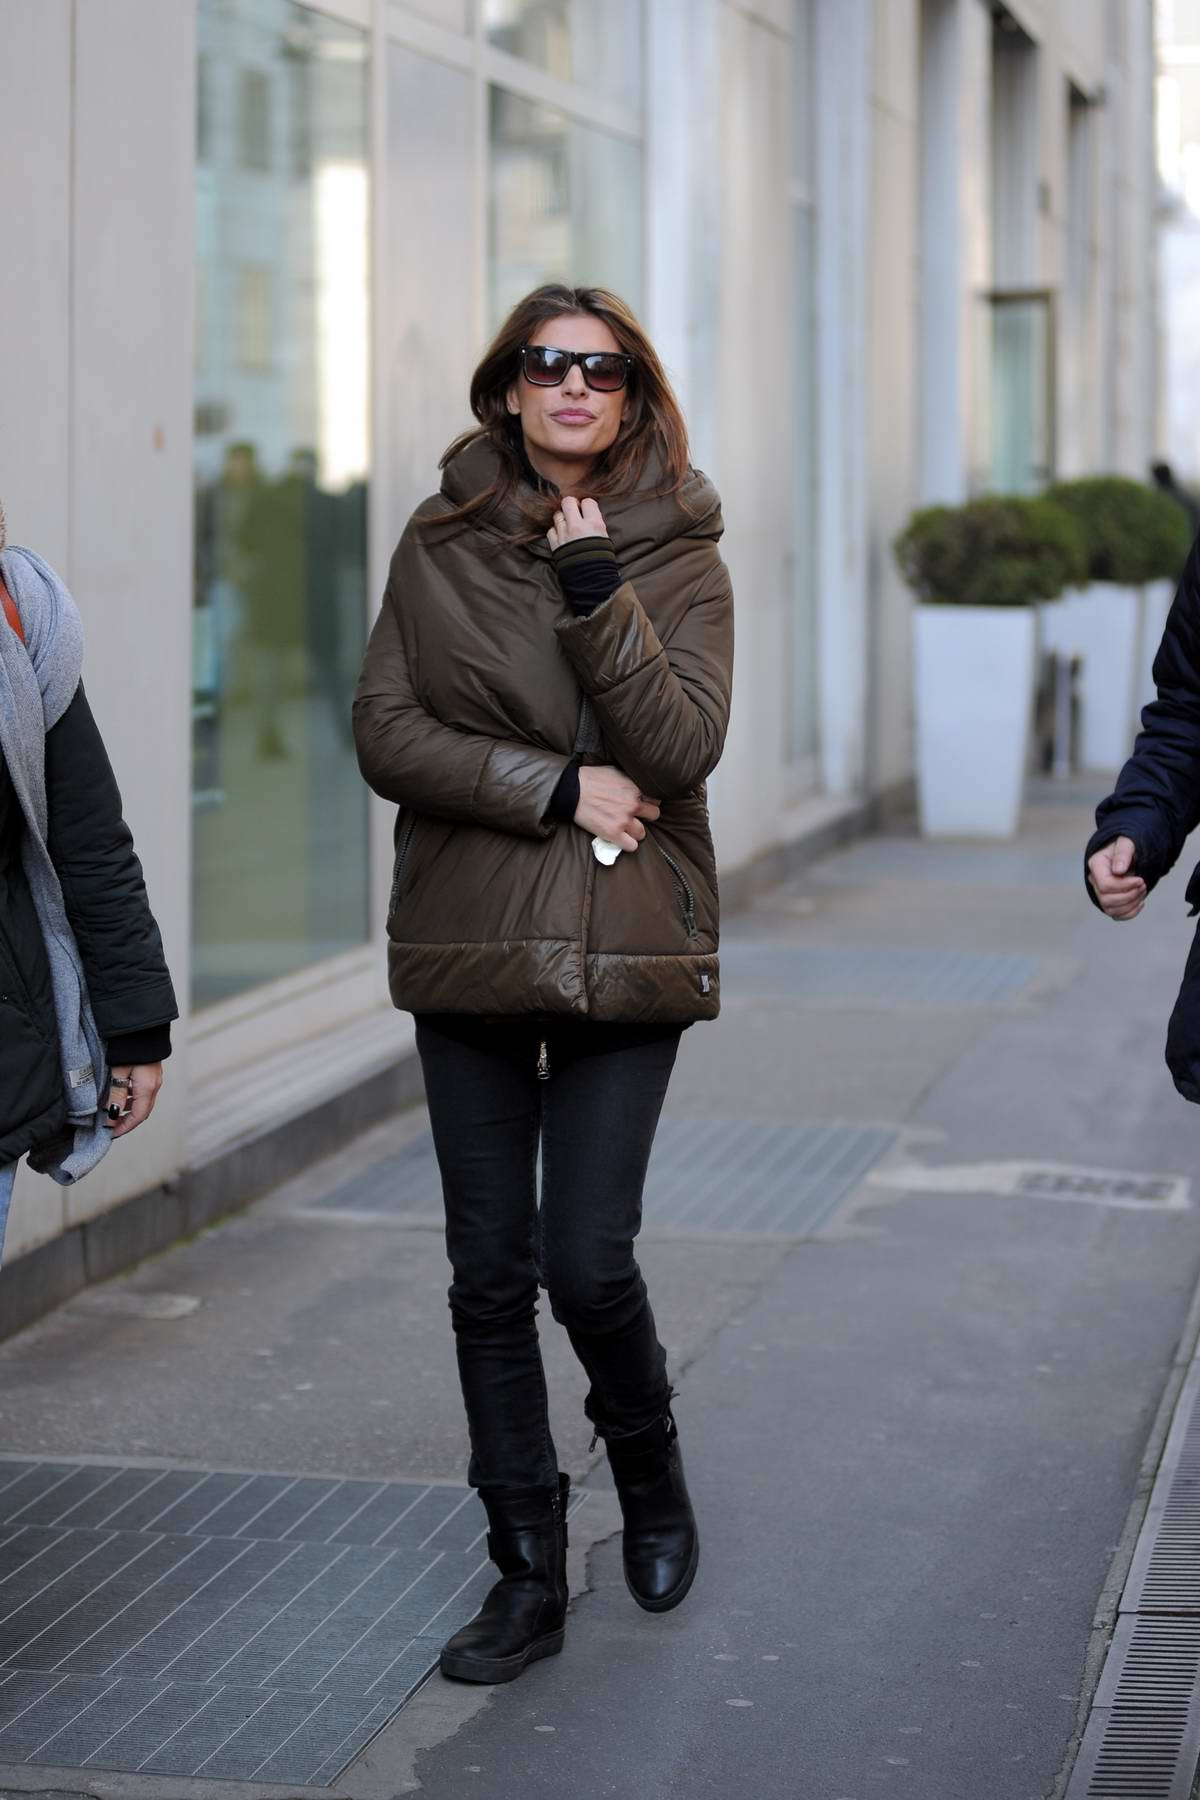 Elisabetta Canalis spotted while out and about in Milan, Italy